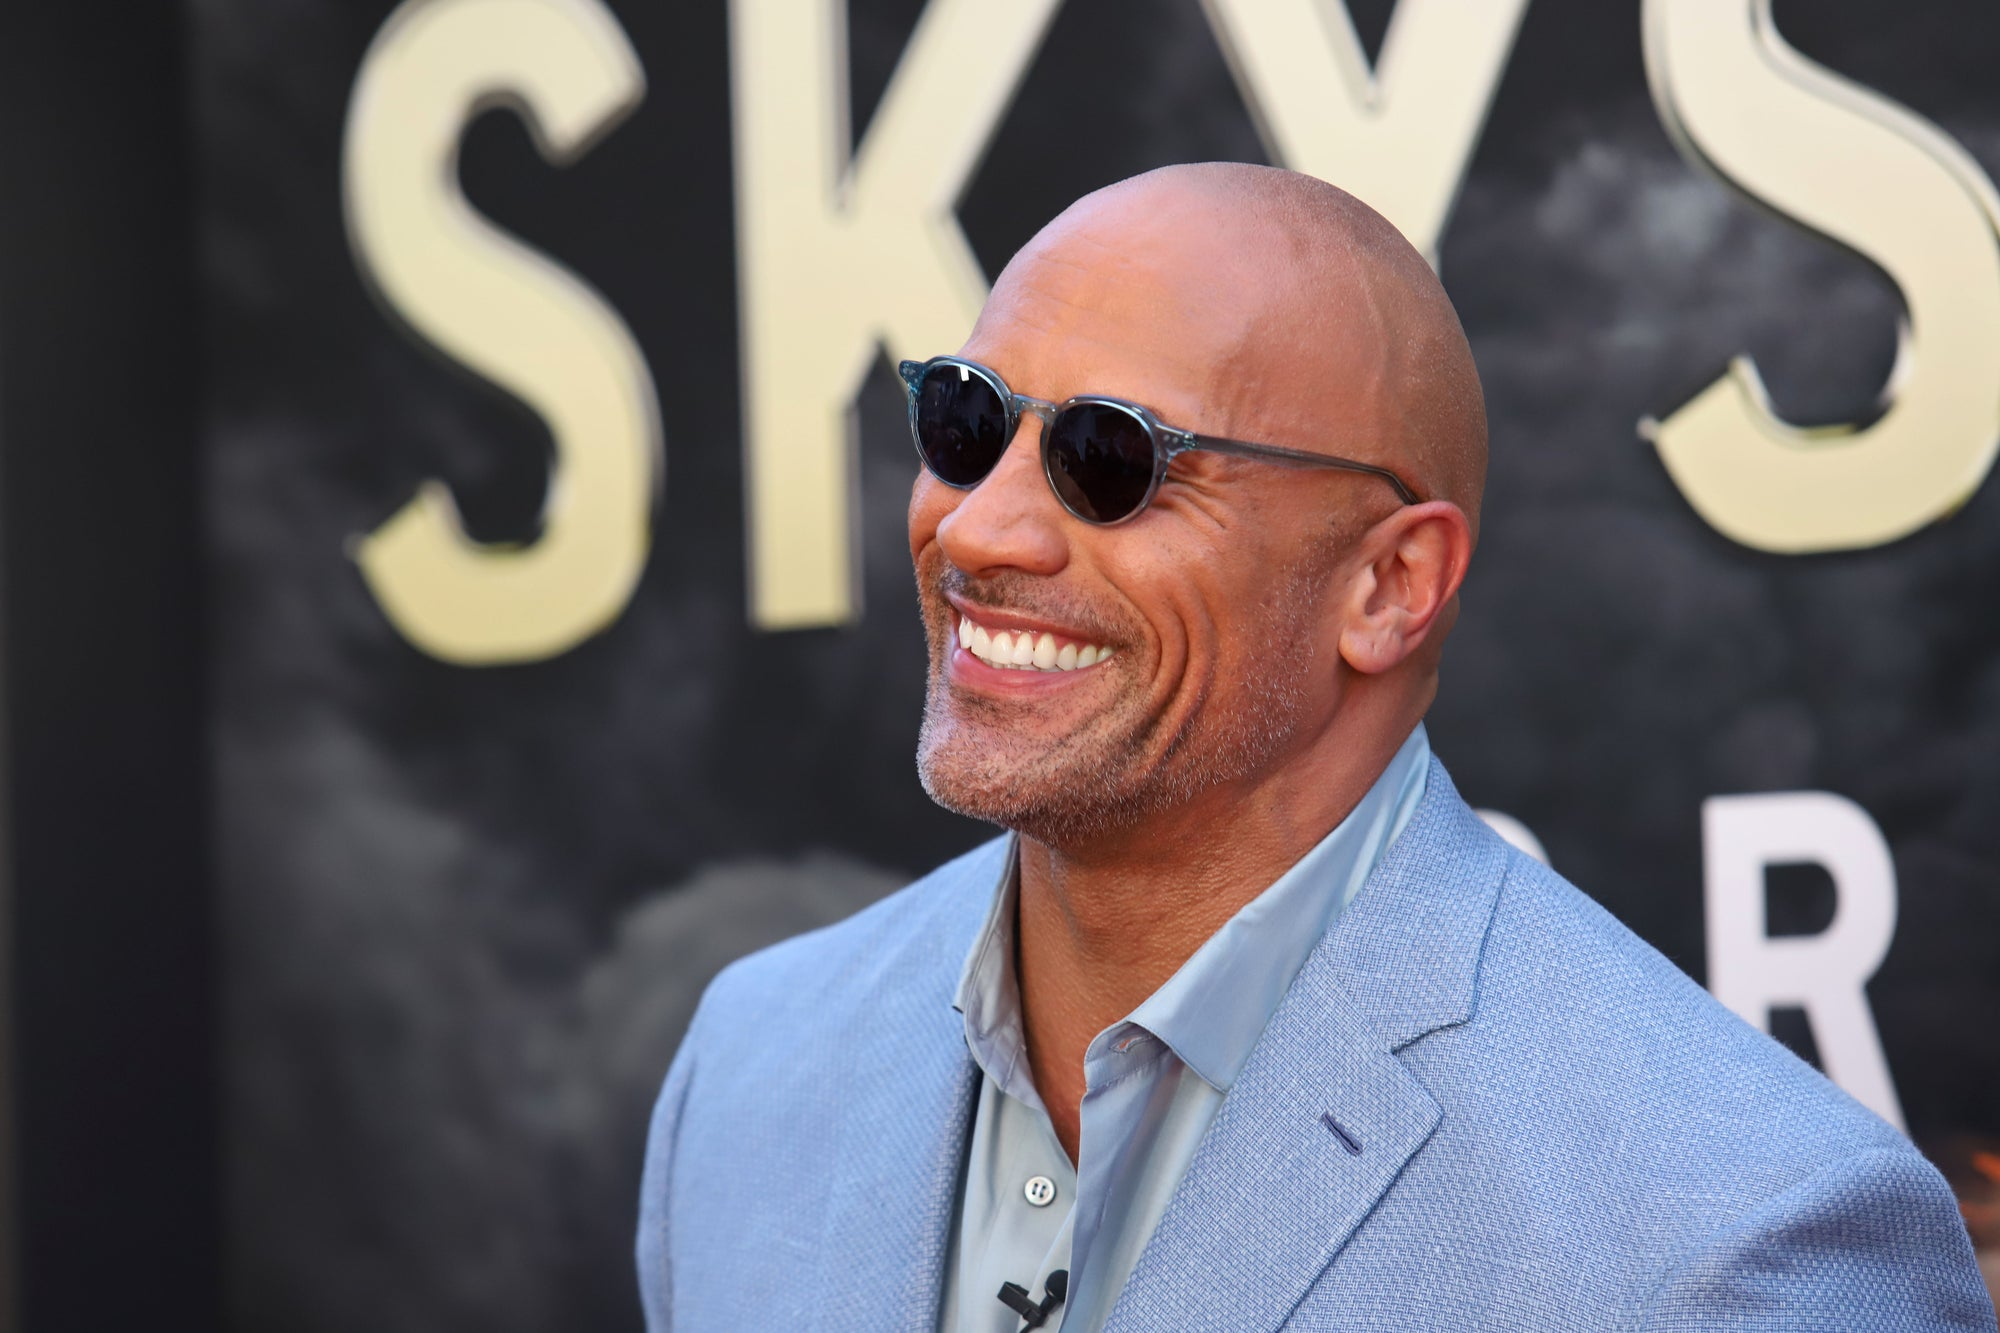 Dwayne Johnson's Real Workout Routine: Train Like The Rock